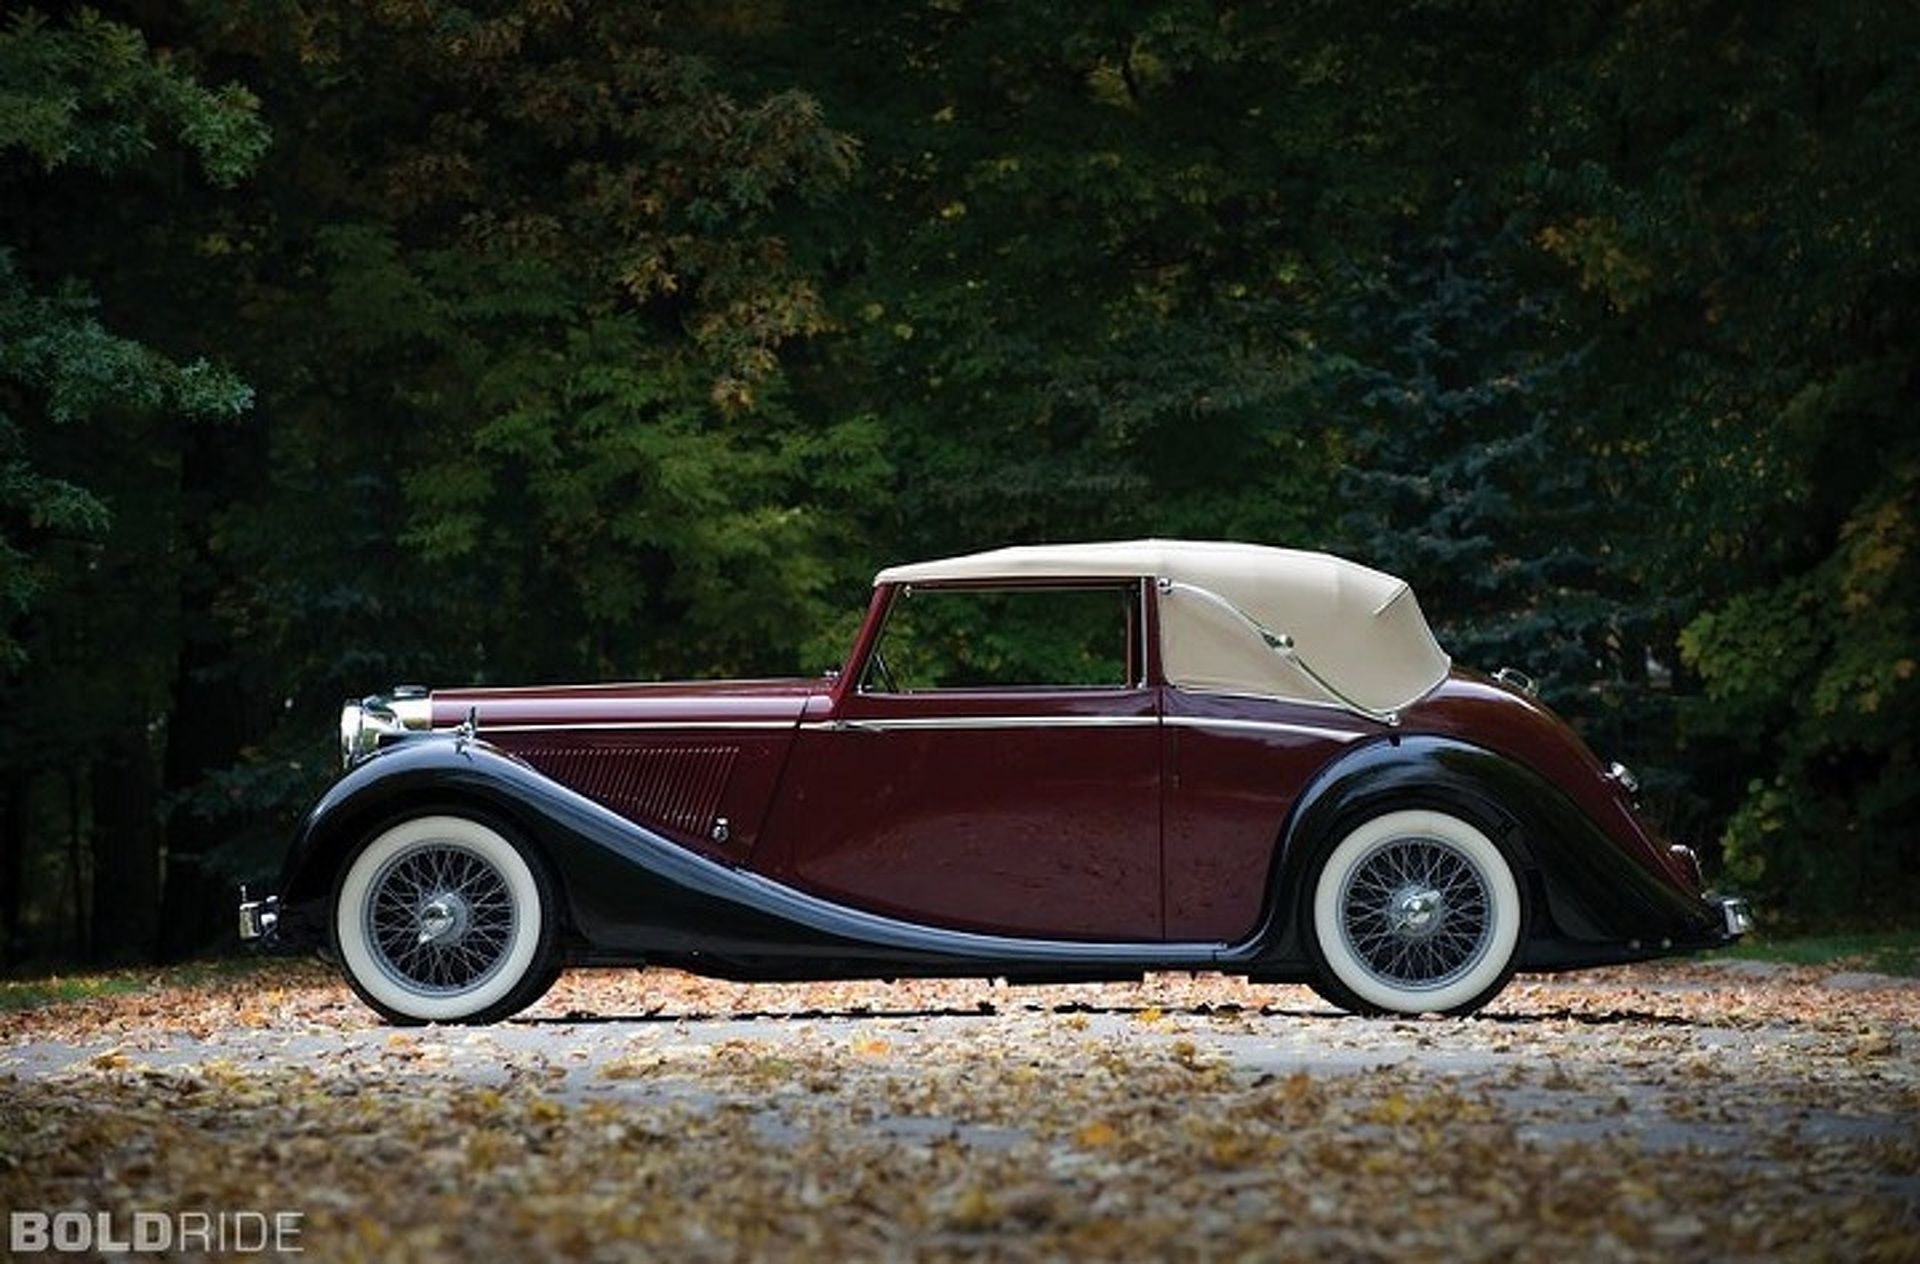 1948 Jaguar Mark IV Drophead Coupe: A Jaguar for a More Civilized Age